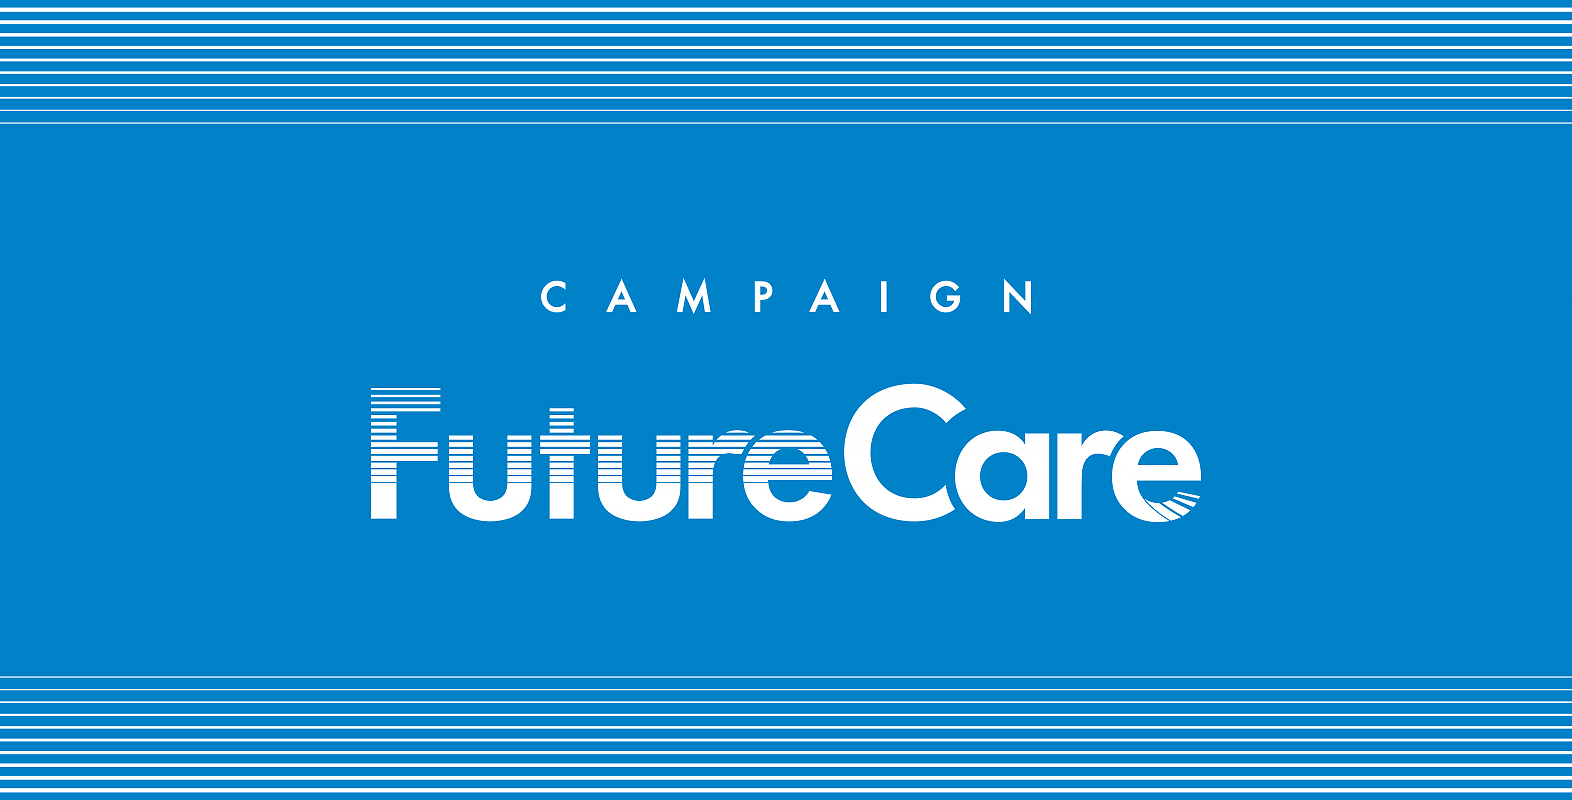 Campaign FutureCare logo